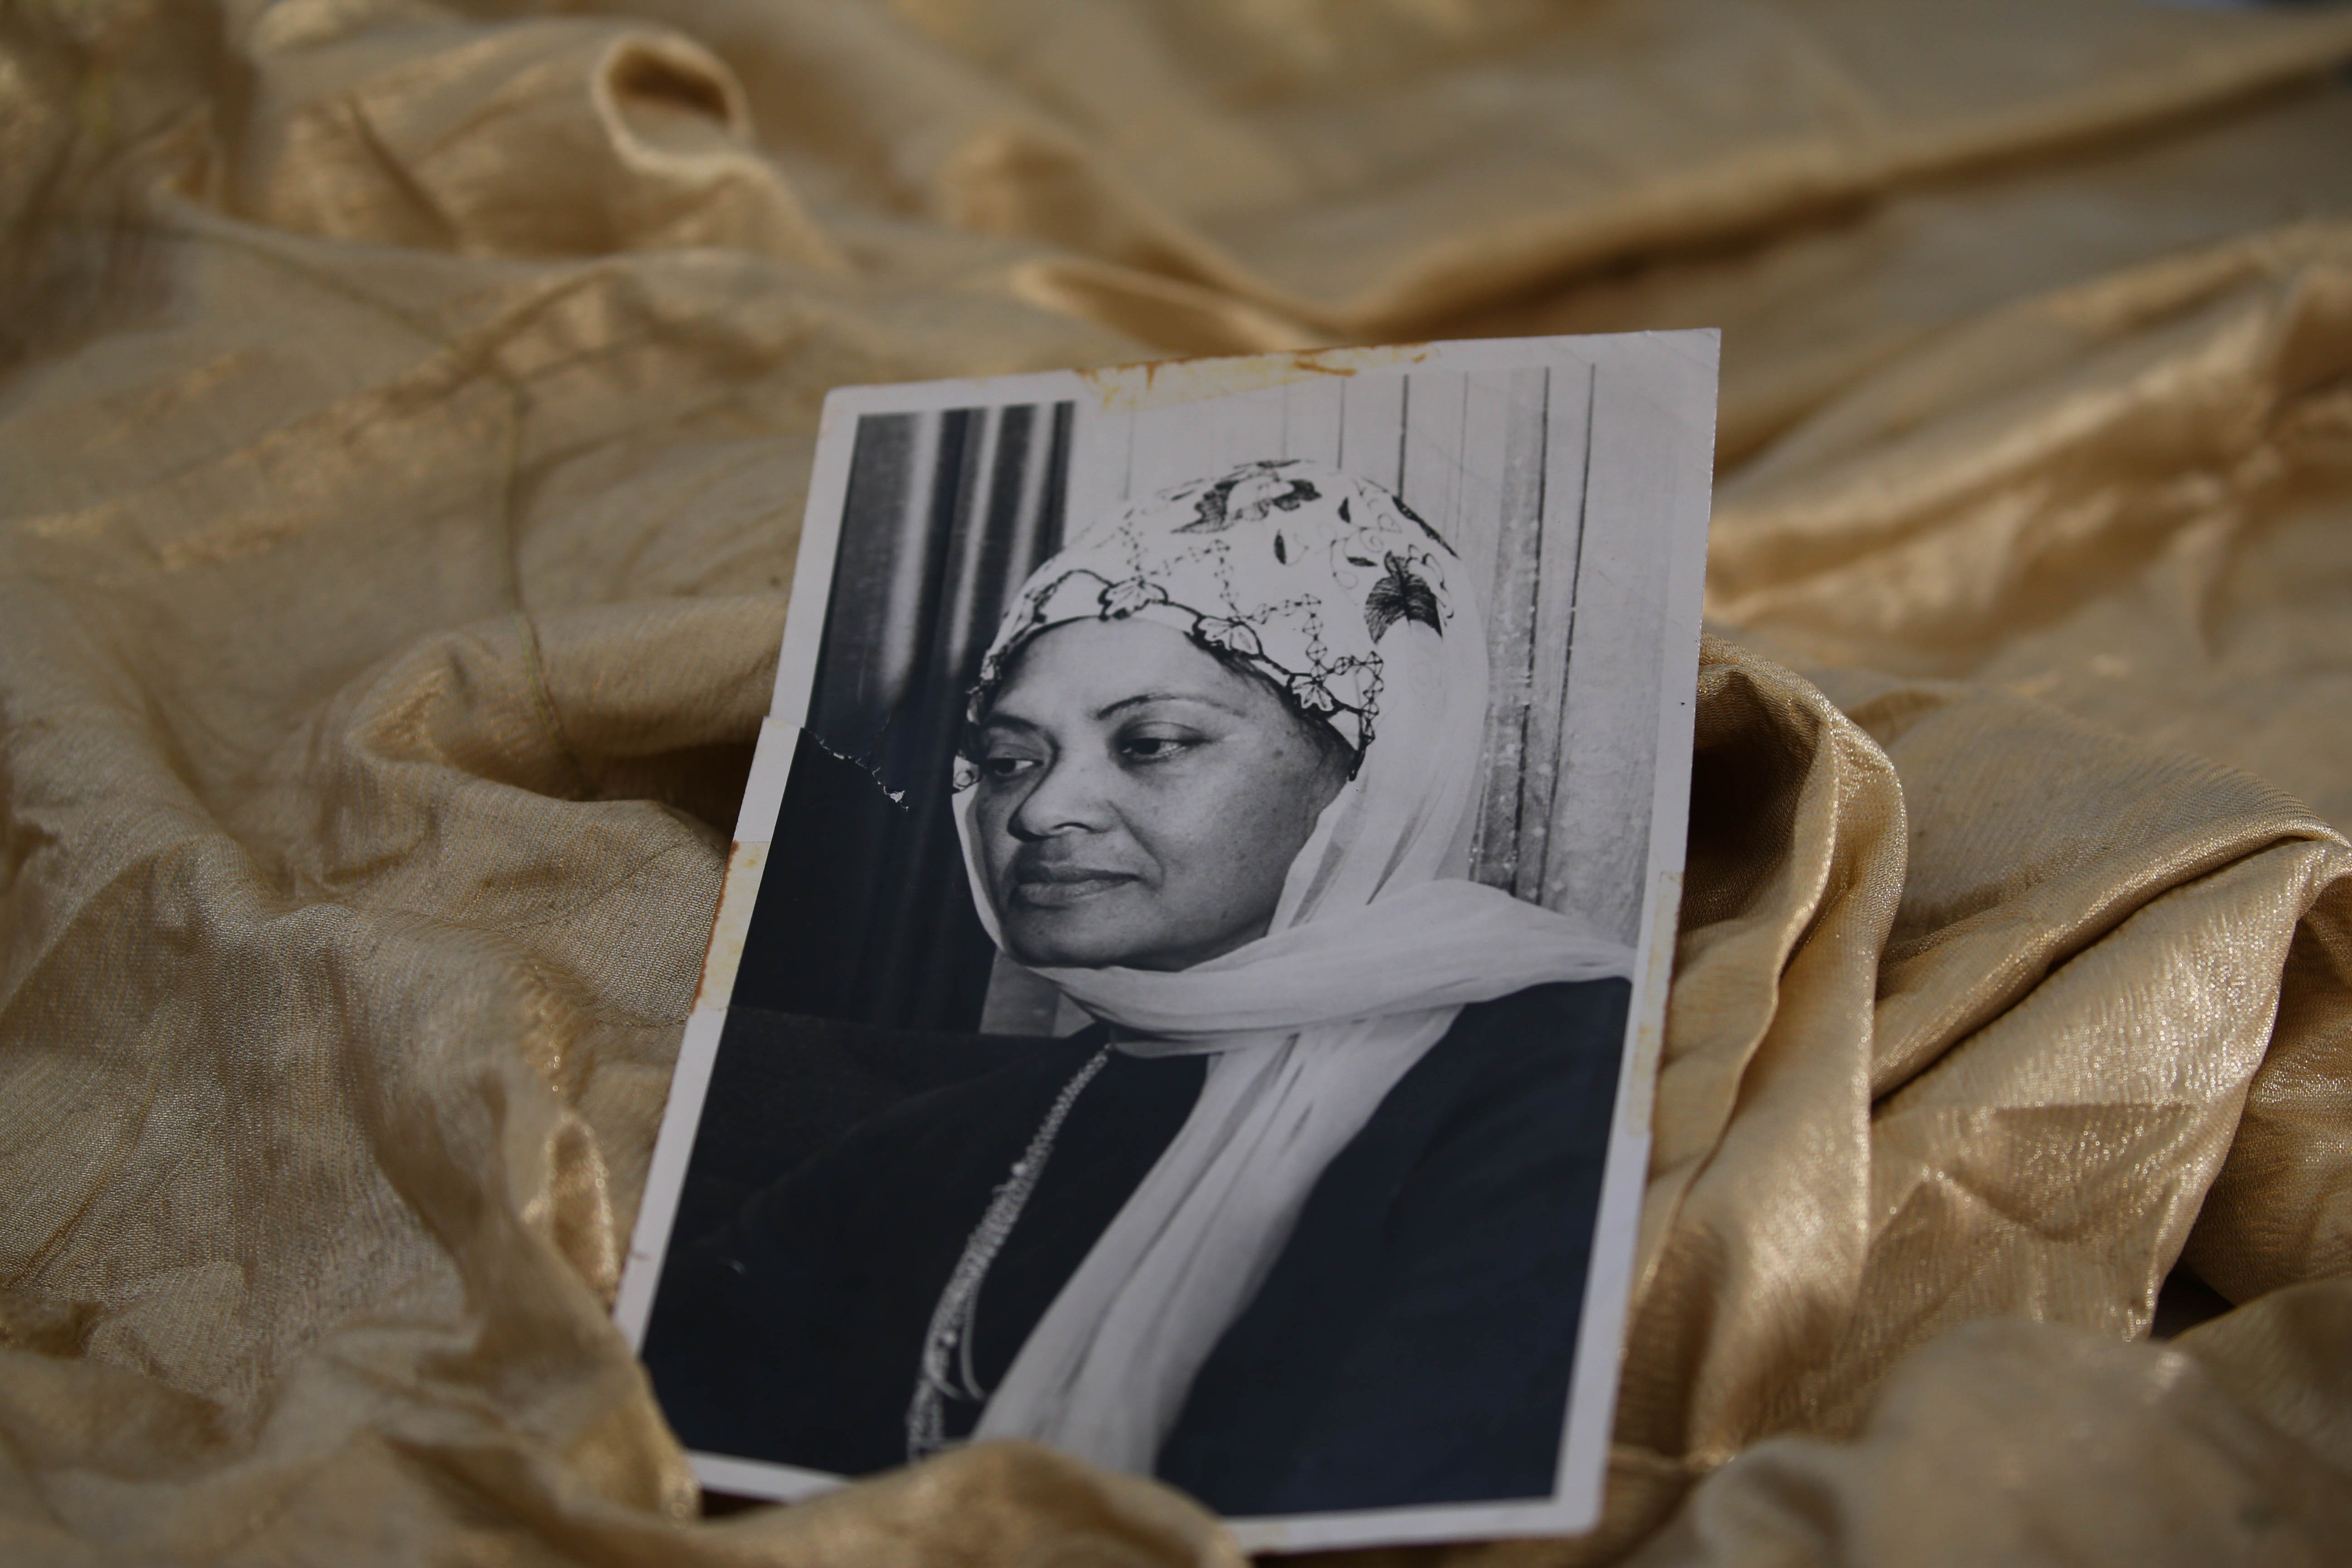 22 September 2019: A photo of Galiema Haron, wife of Imam Haron, taken while she was in mourning after his death in 1969.